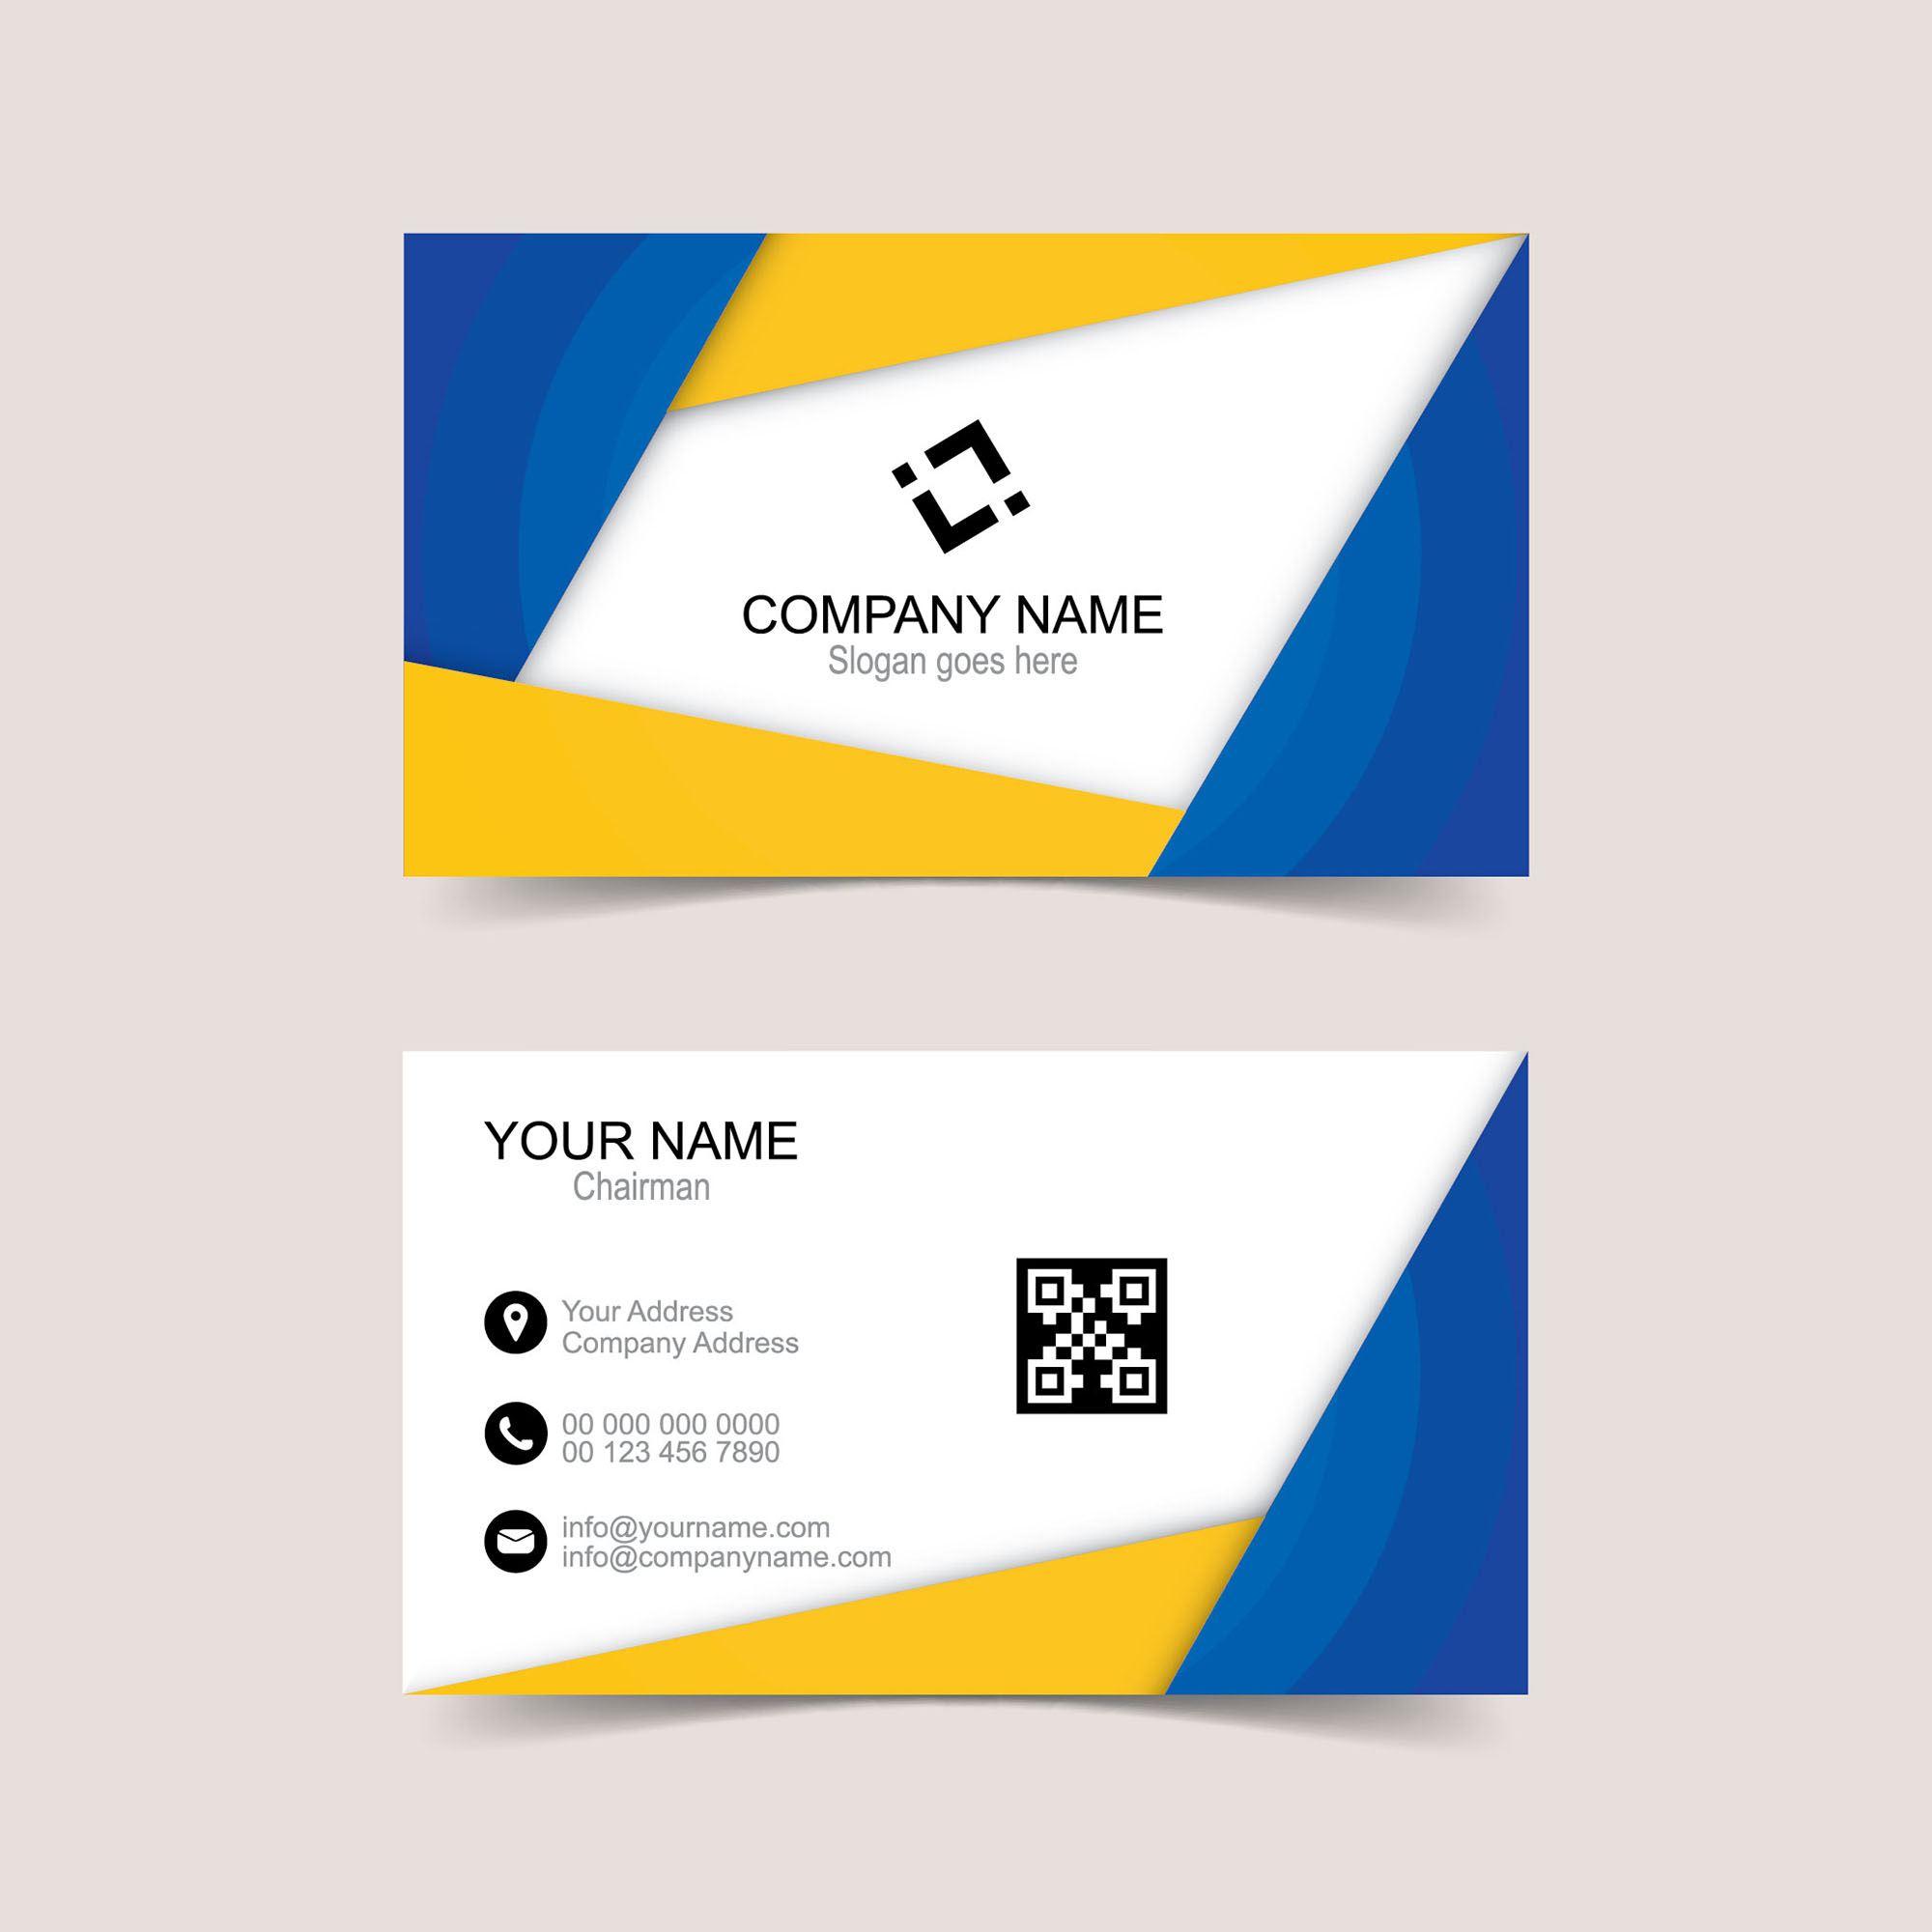 Vector Creative Business Card Template Free Download - Wisxi.com